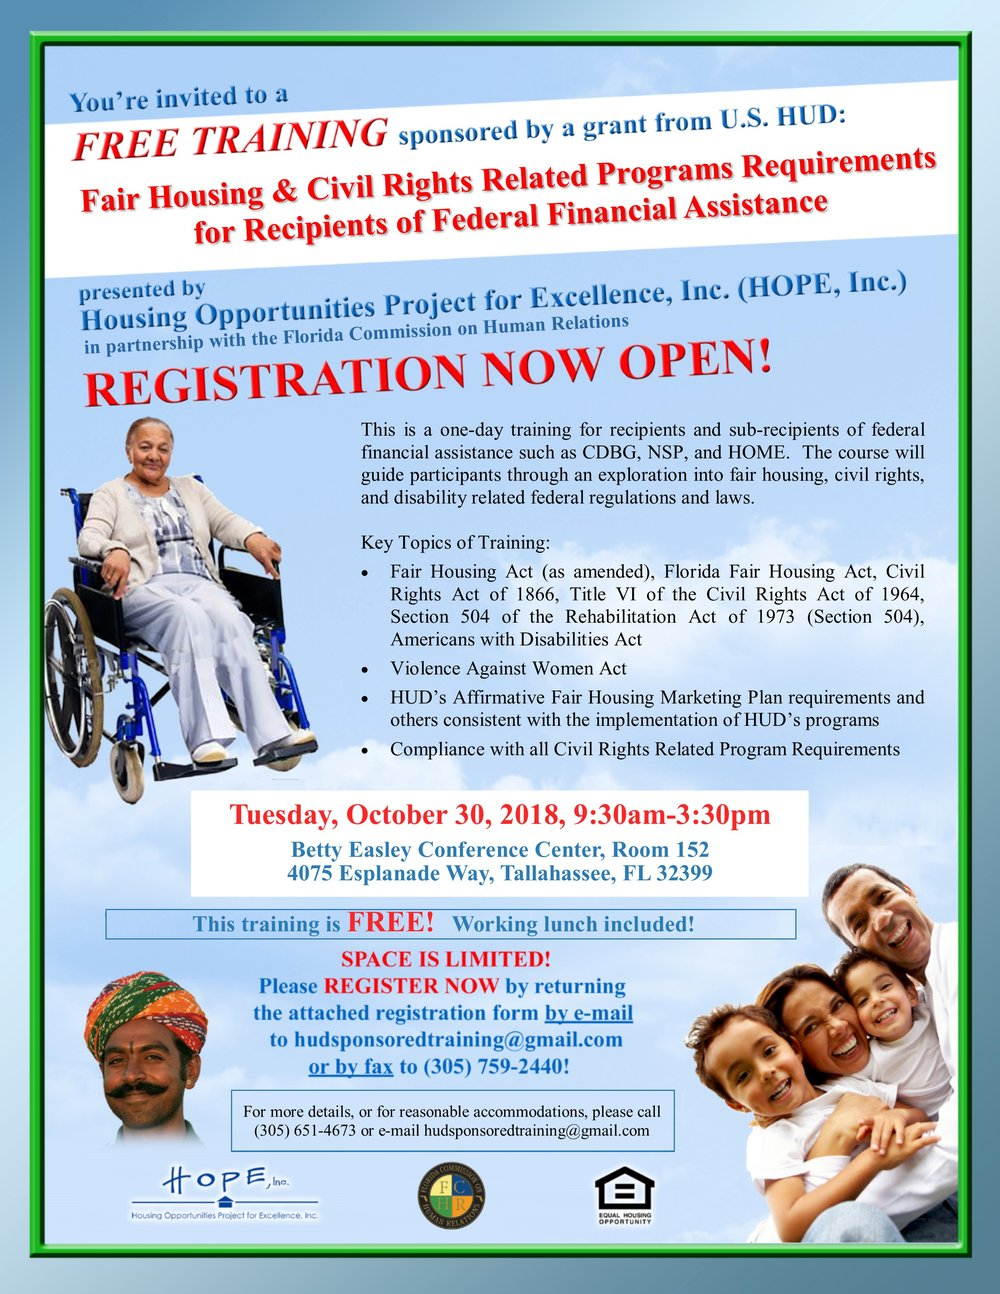 Tallahassee Civil Rights Training Flyer Image